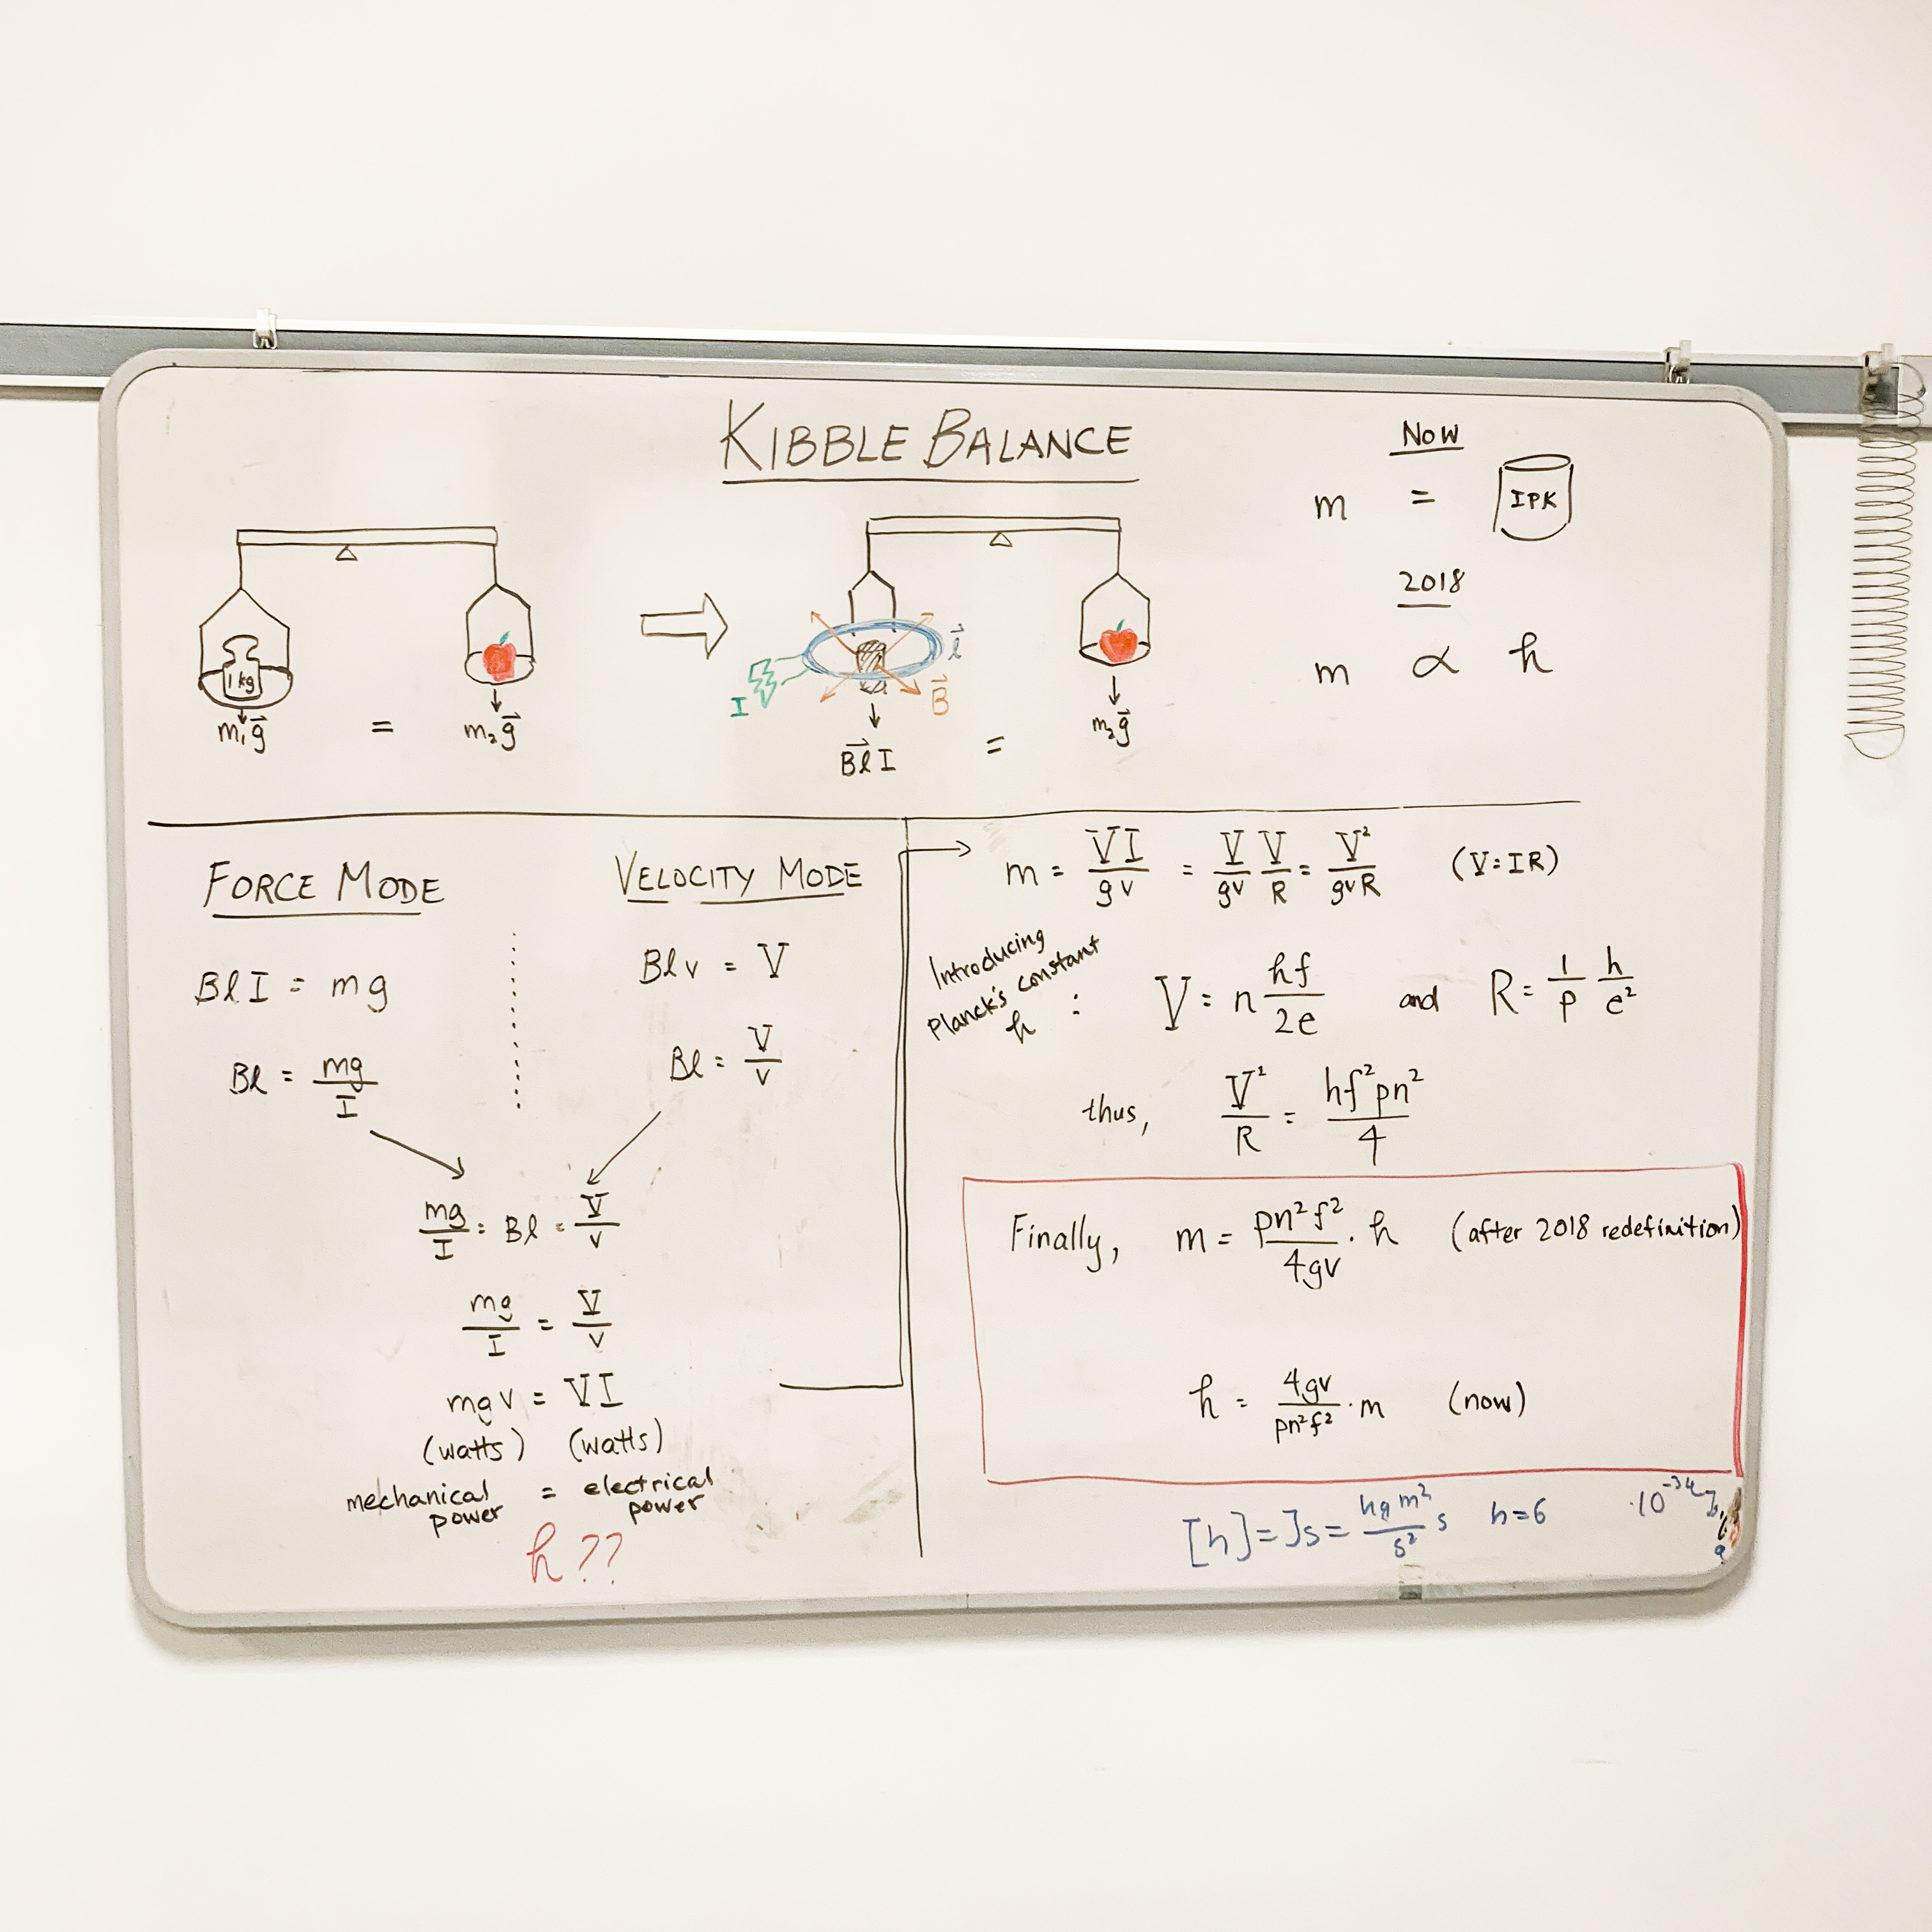 Kilogram Gets A New Definition Slashdot 1986 Ford Escort Body Electrical System Diagram The Kibble Balance Uses Measurements Of Voltage Current Velocity And Gravitational Acceleration In Order To Calculate Mass That Was Placed On